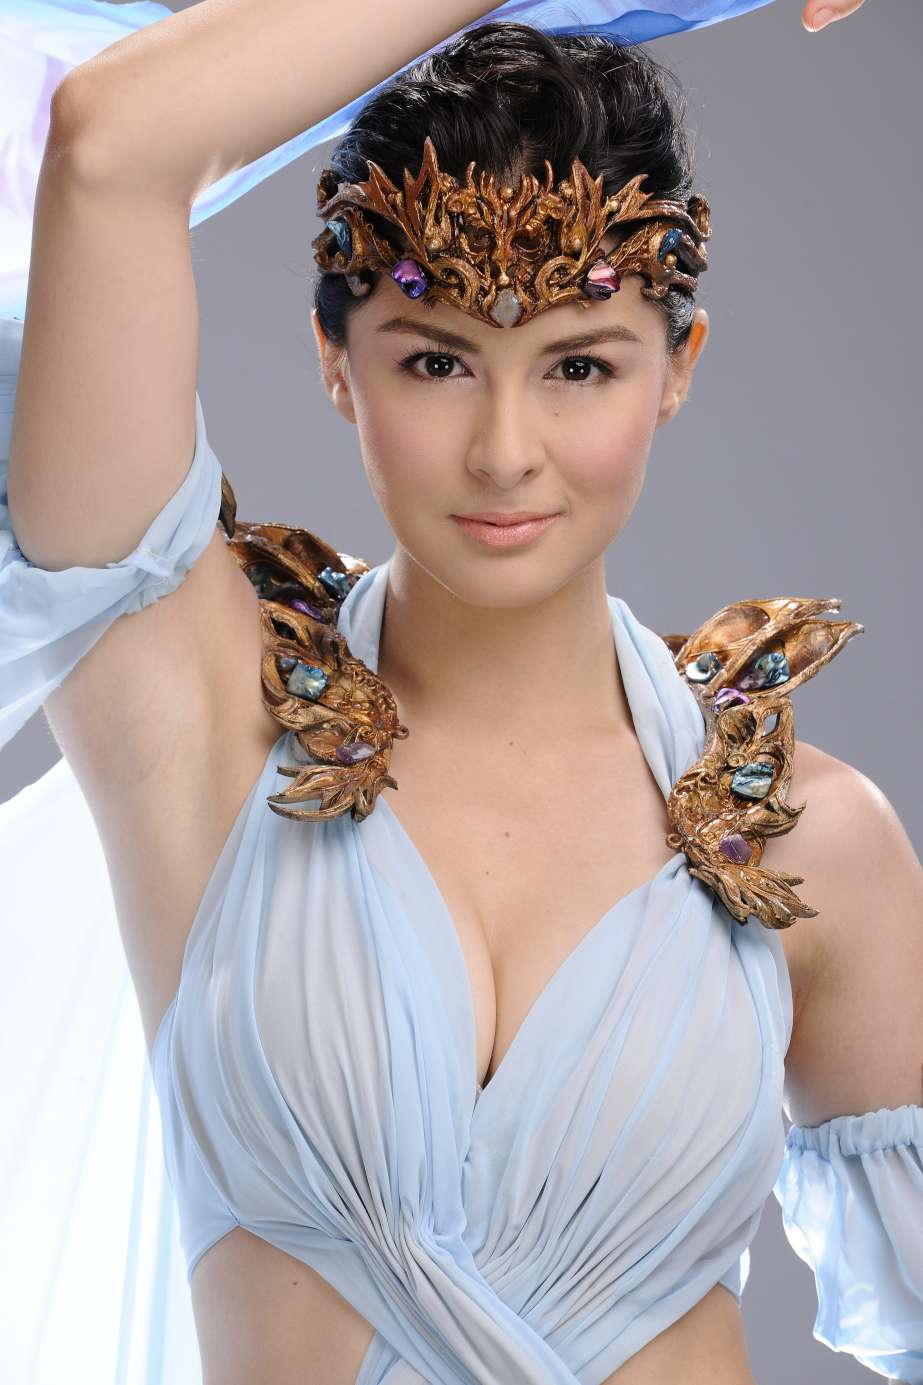 Marian rivera porn sex apologise, but